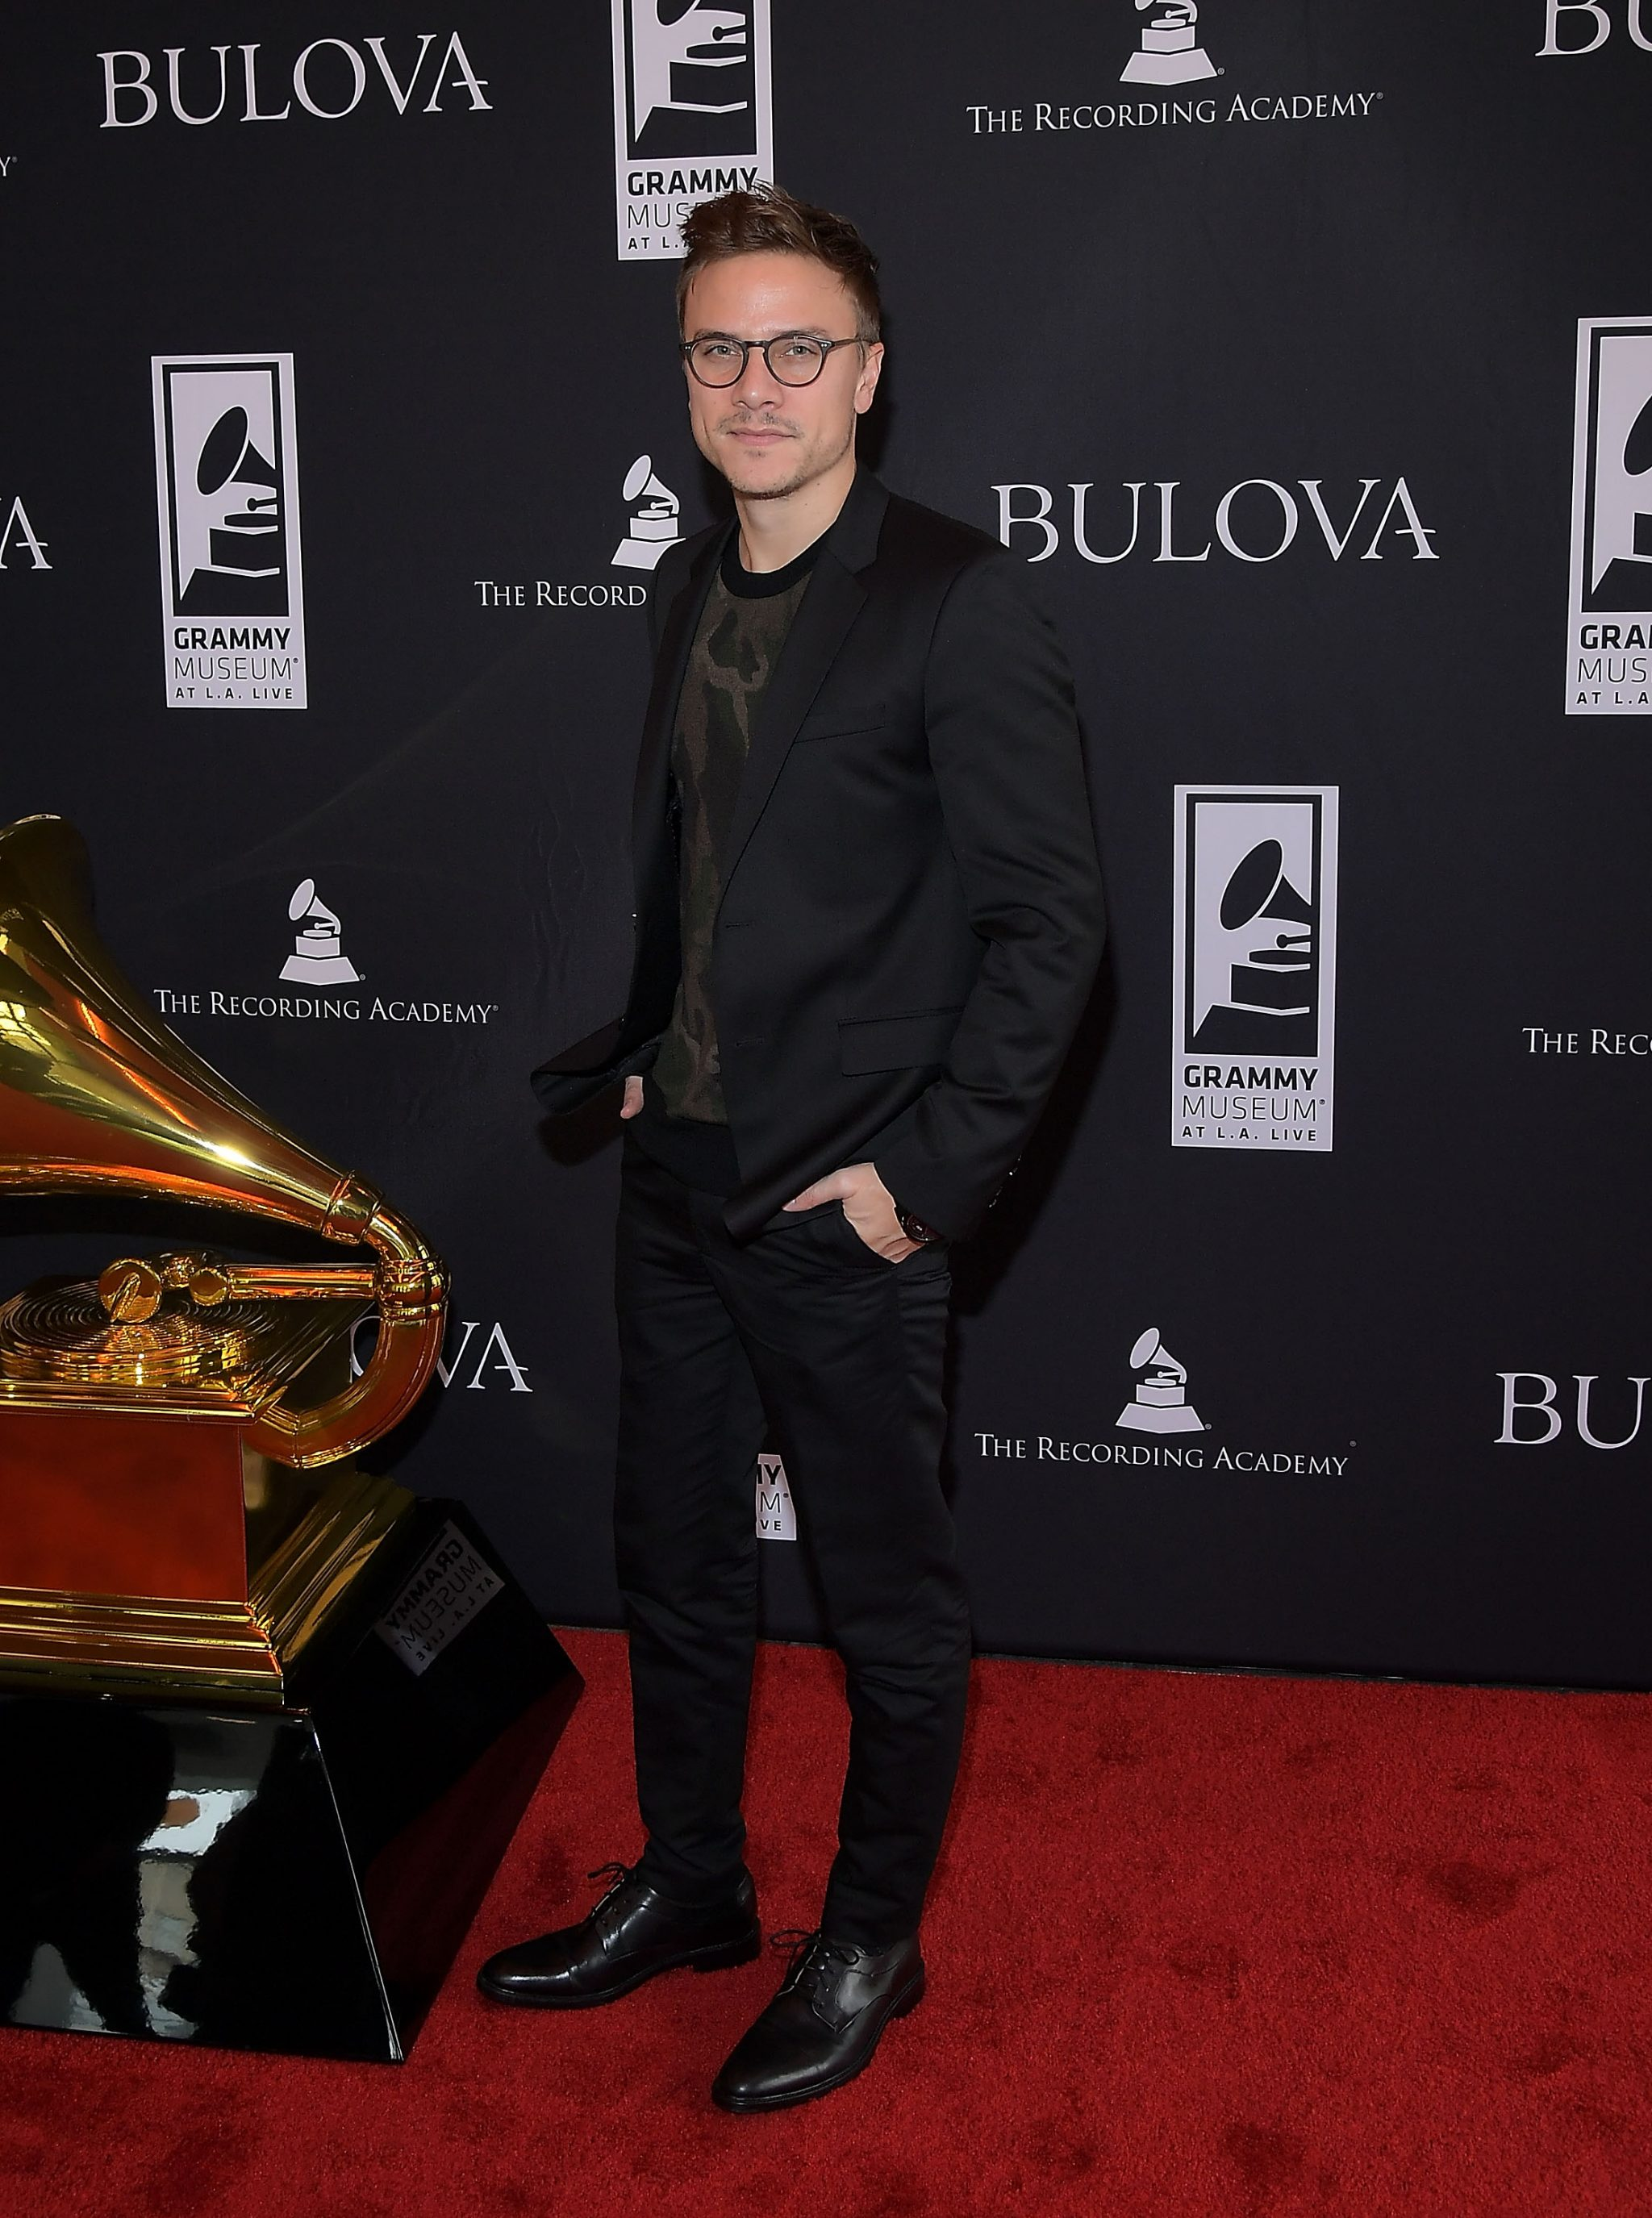 LOS ANGELES, CA - FEBRUARY 11:  Matt Cutshall attends the Bulova x GRAMMY Brunch at The GRAMMY Museum on February 11, 2017 in Los Angeles, California.  (Photo by Charley Gallay/WireImage)